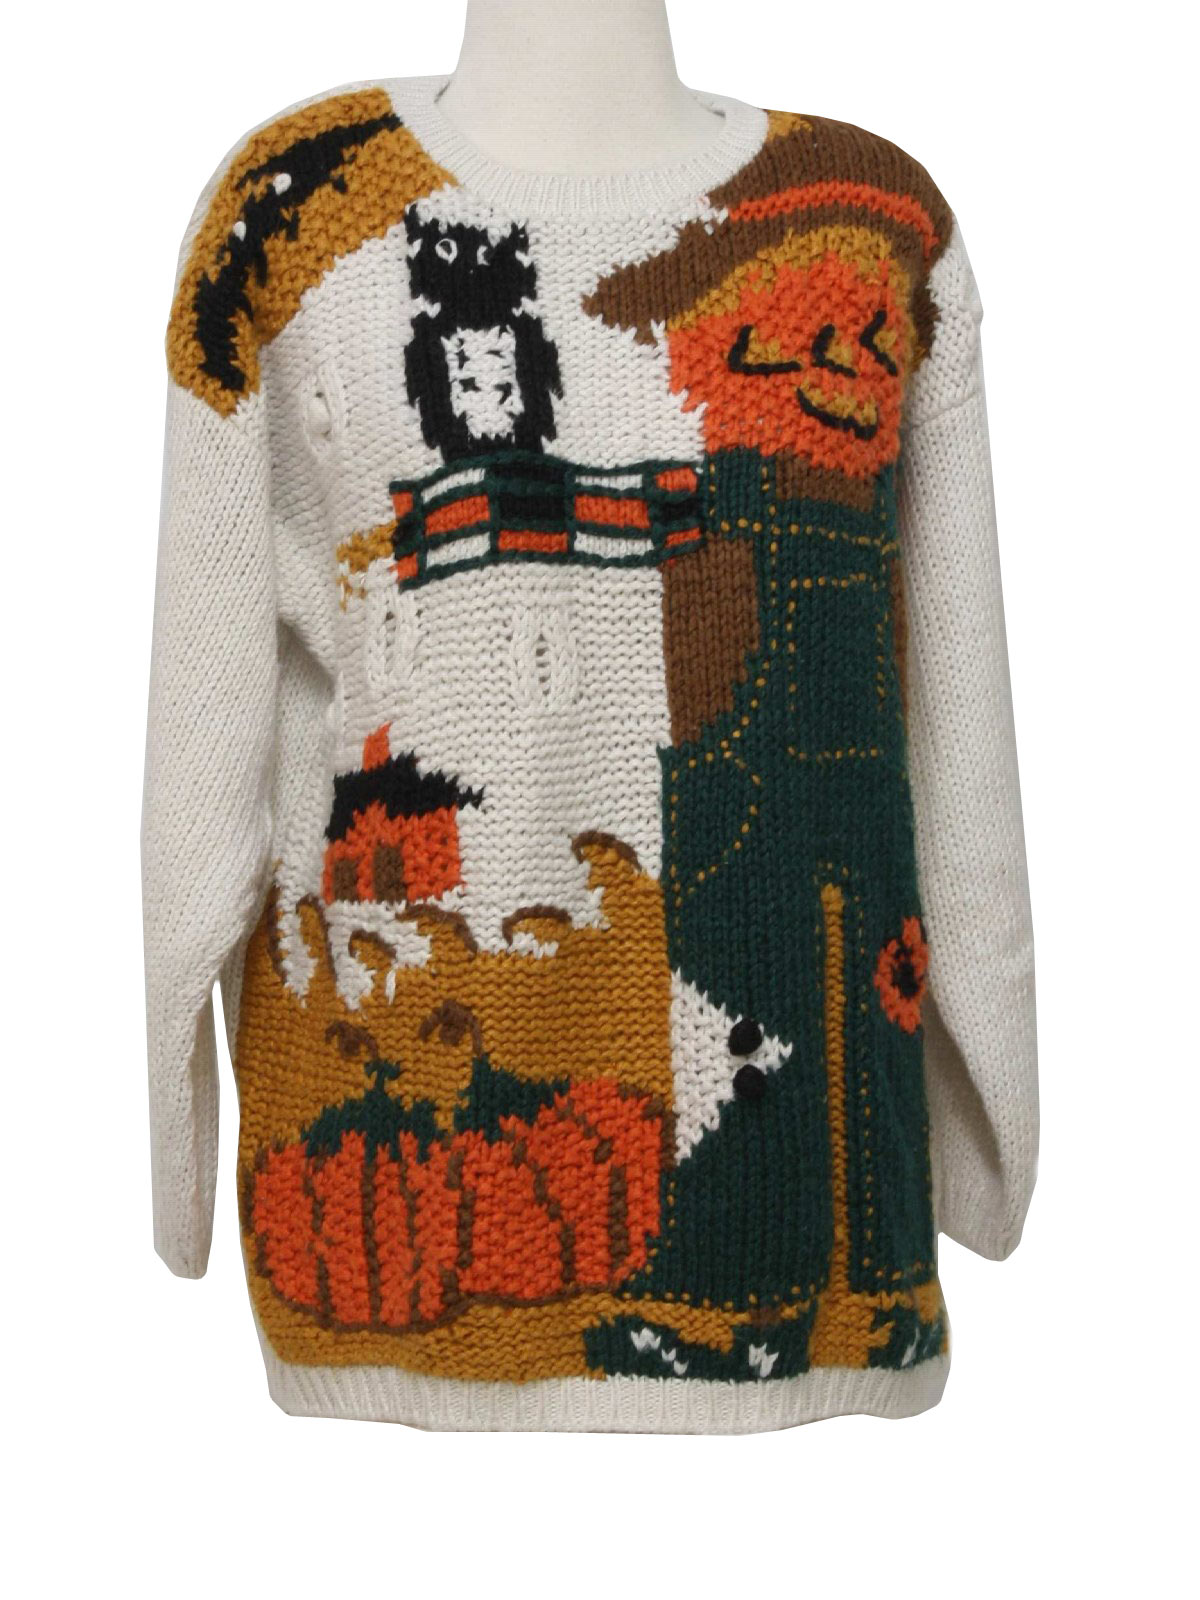 1990's Colleens Collectables Womens Kitschy Cheesy Ugly Halloween Sweater